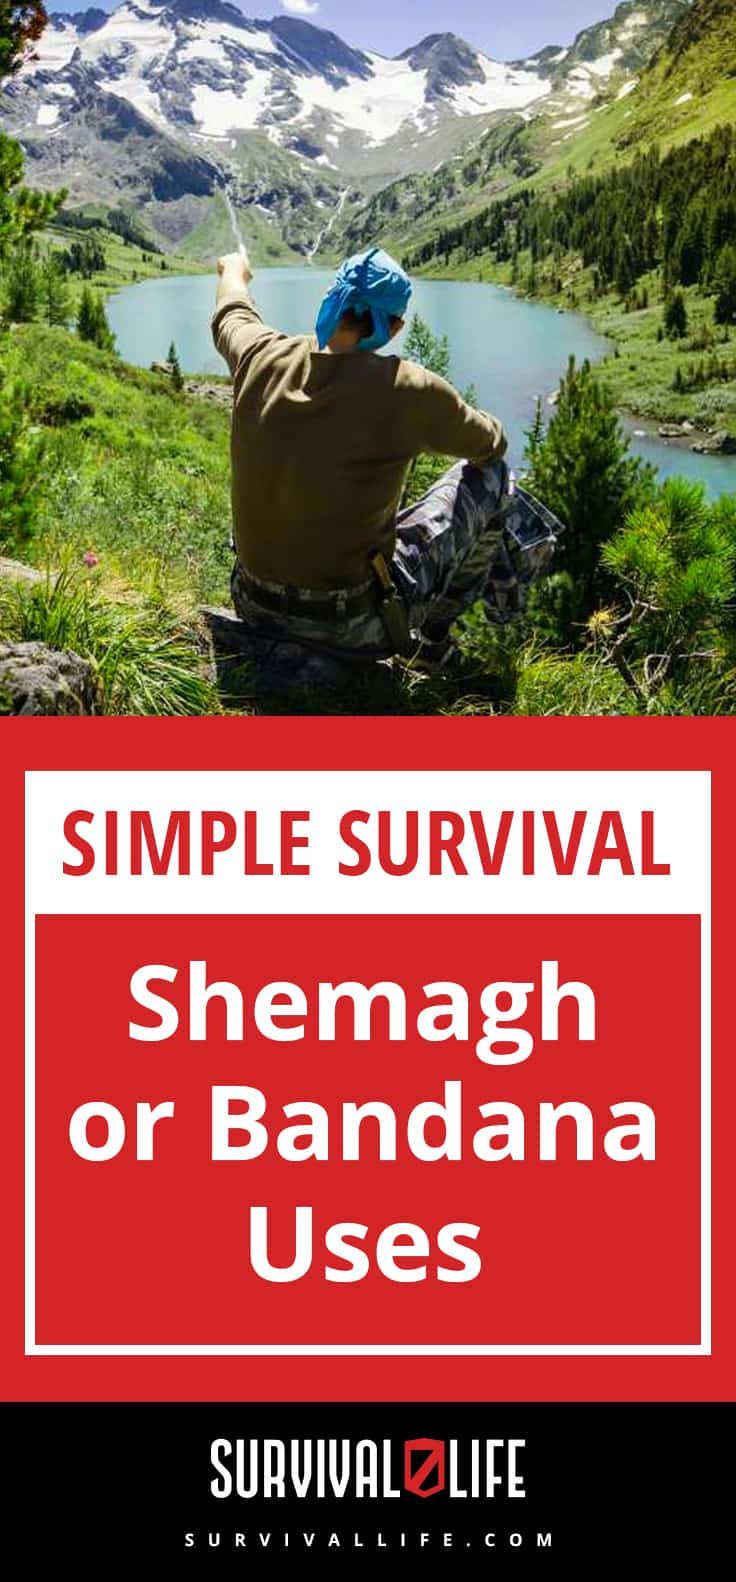 Shemagh or Bandana Uses | Simple Survival